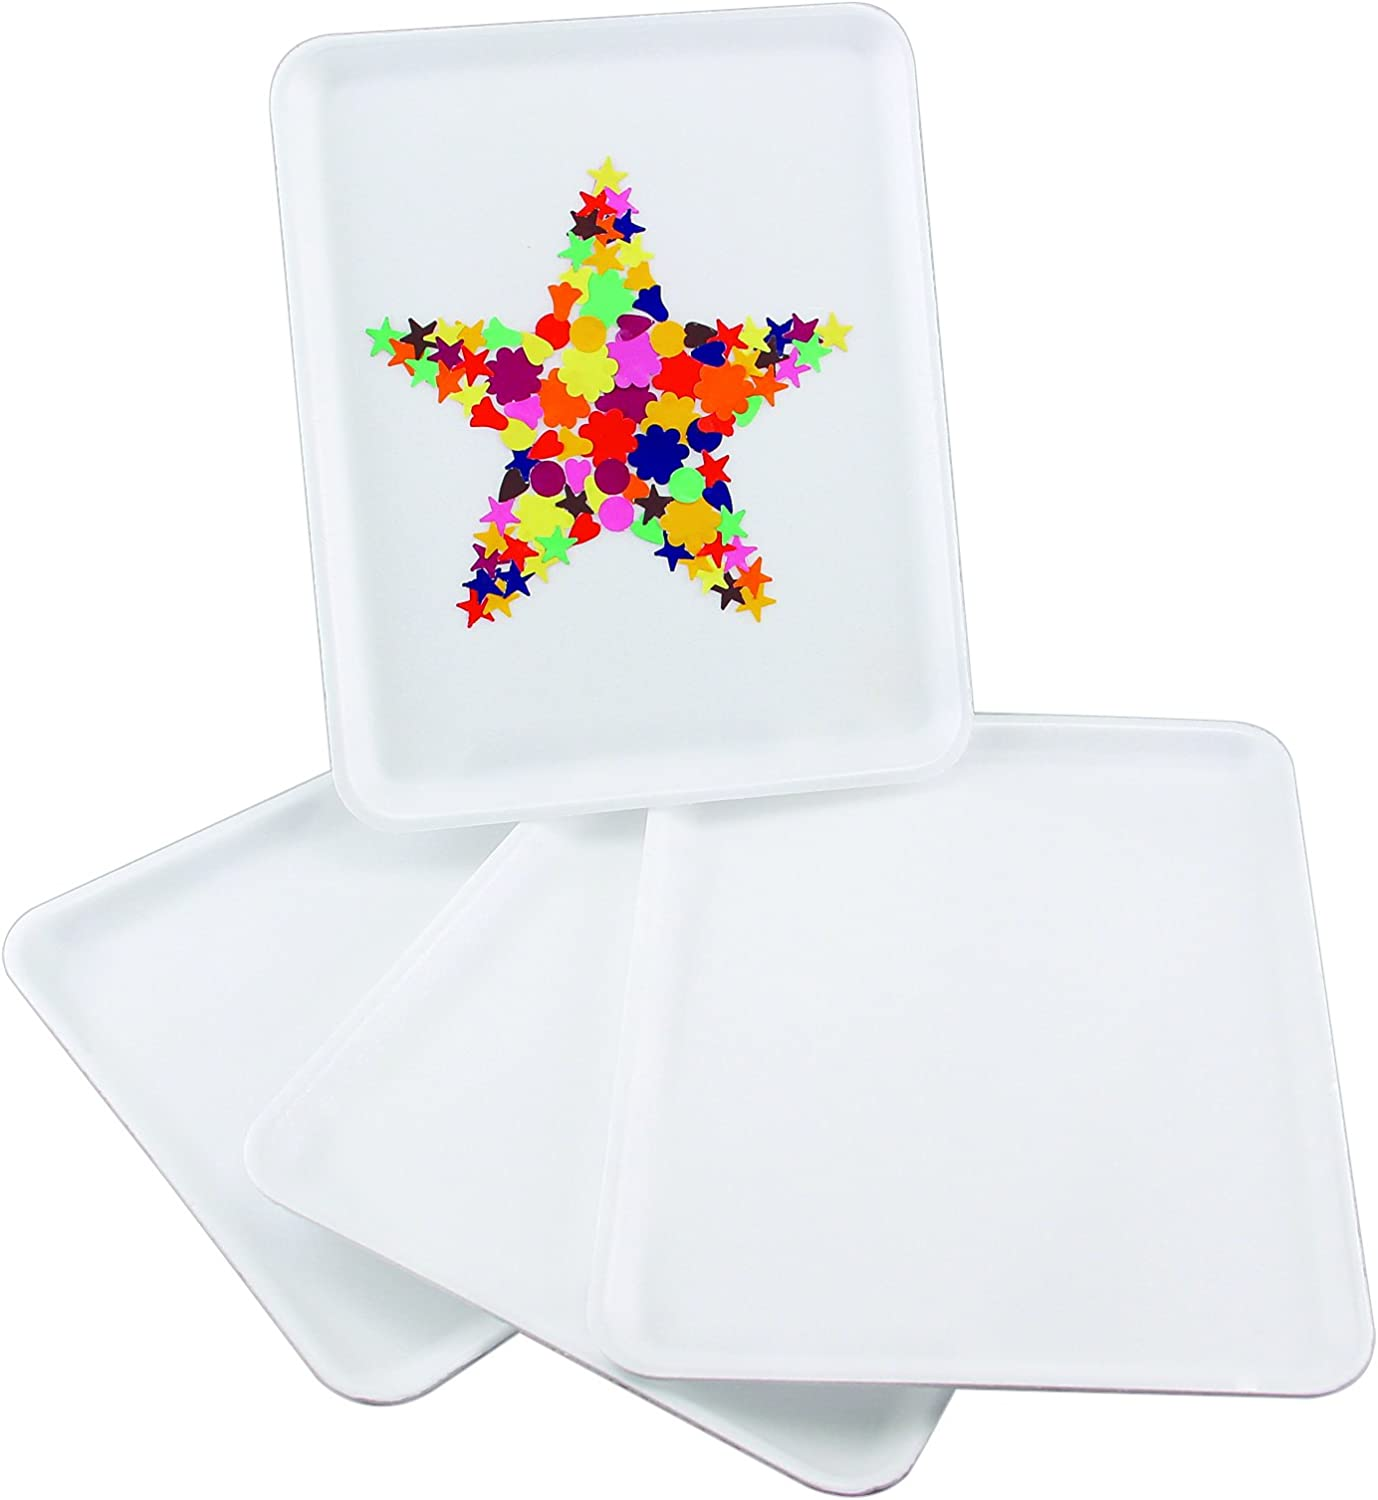 Hygloss Foam Trays for Collages and Crafts 9 x 11-Inches, 10 Pieces, White